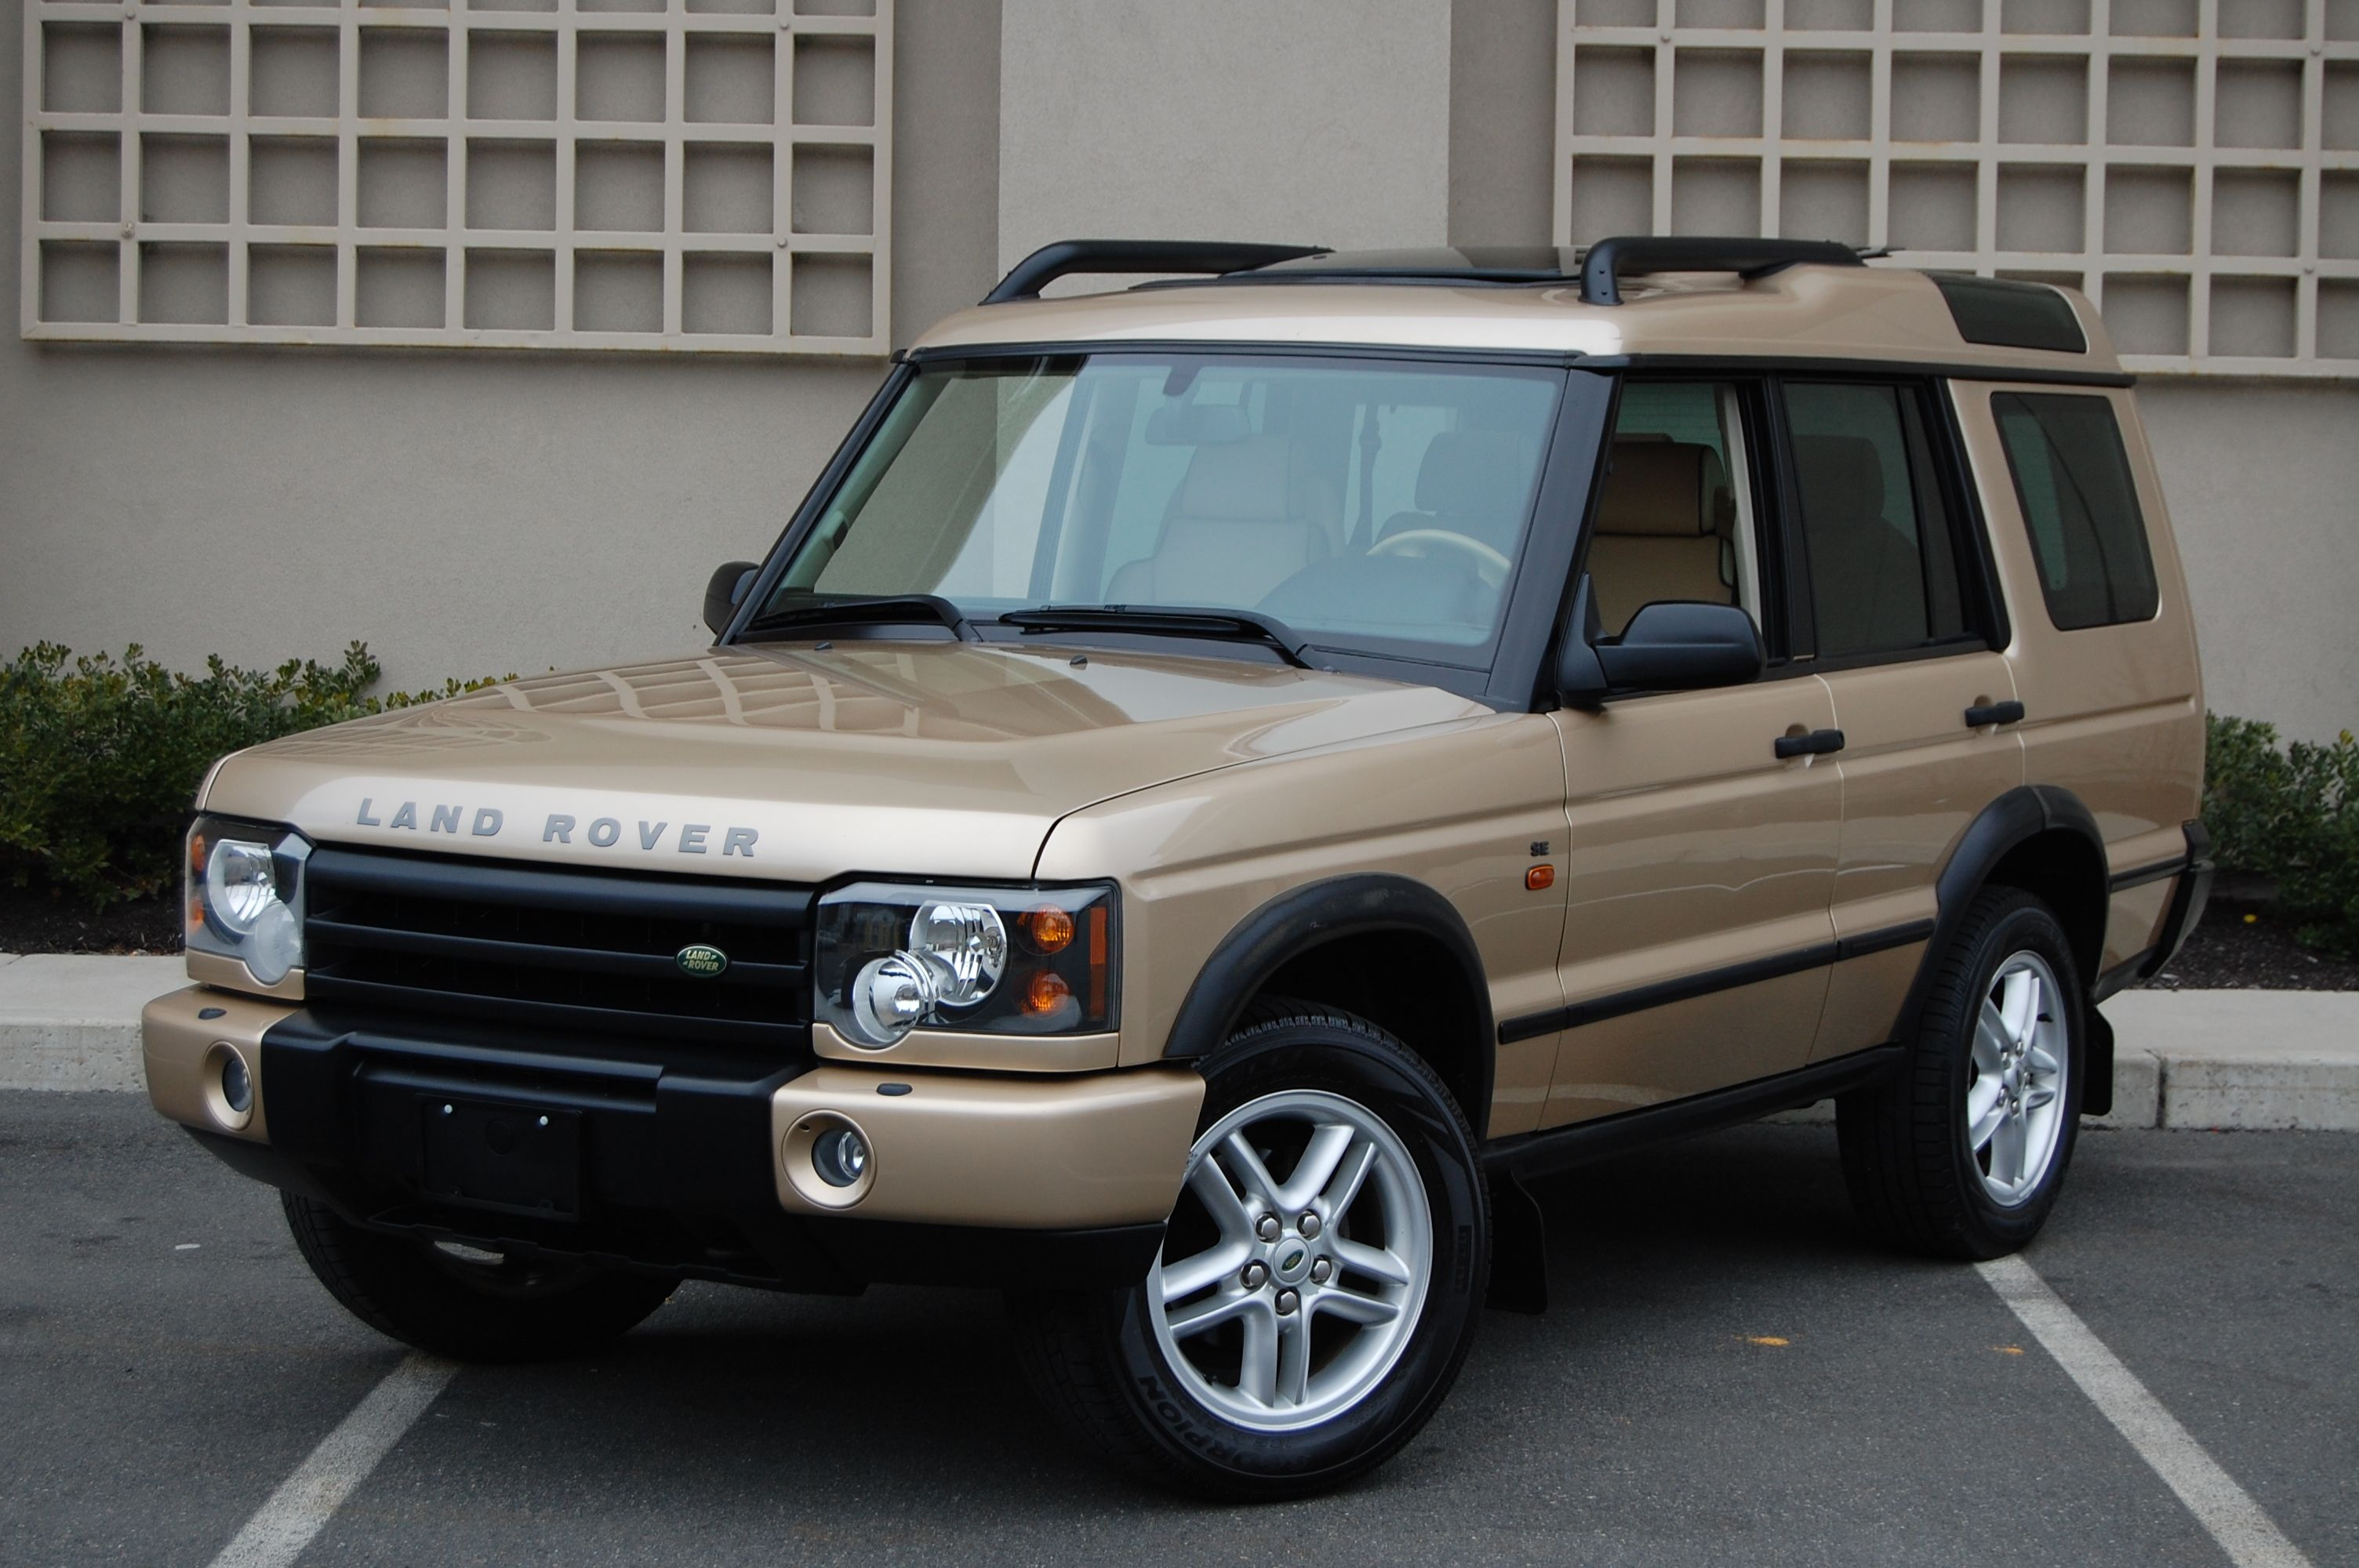 2004 Maya Gold Rover discovery, Land rover discovery